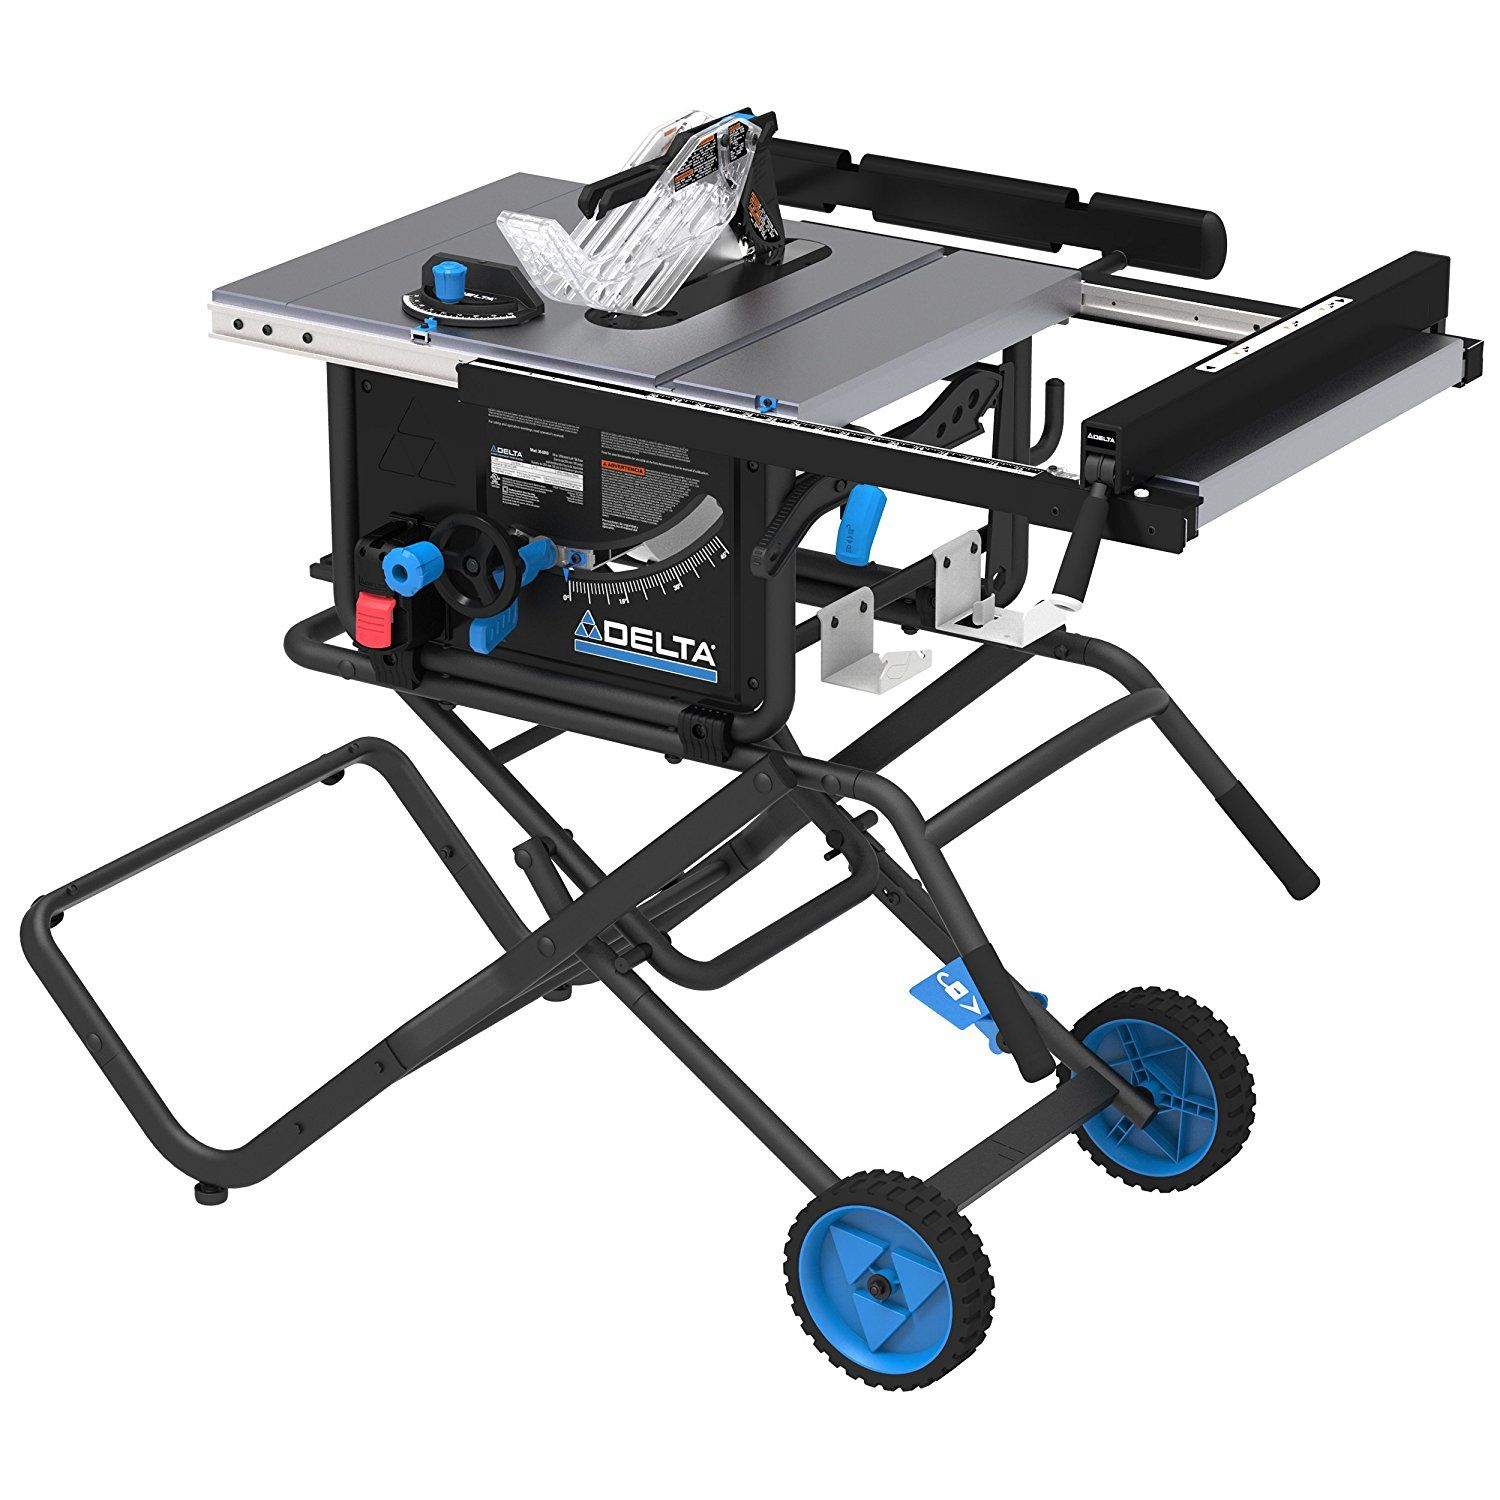 Portable table saw reviews tests and comparisons greentooth Image collections